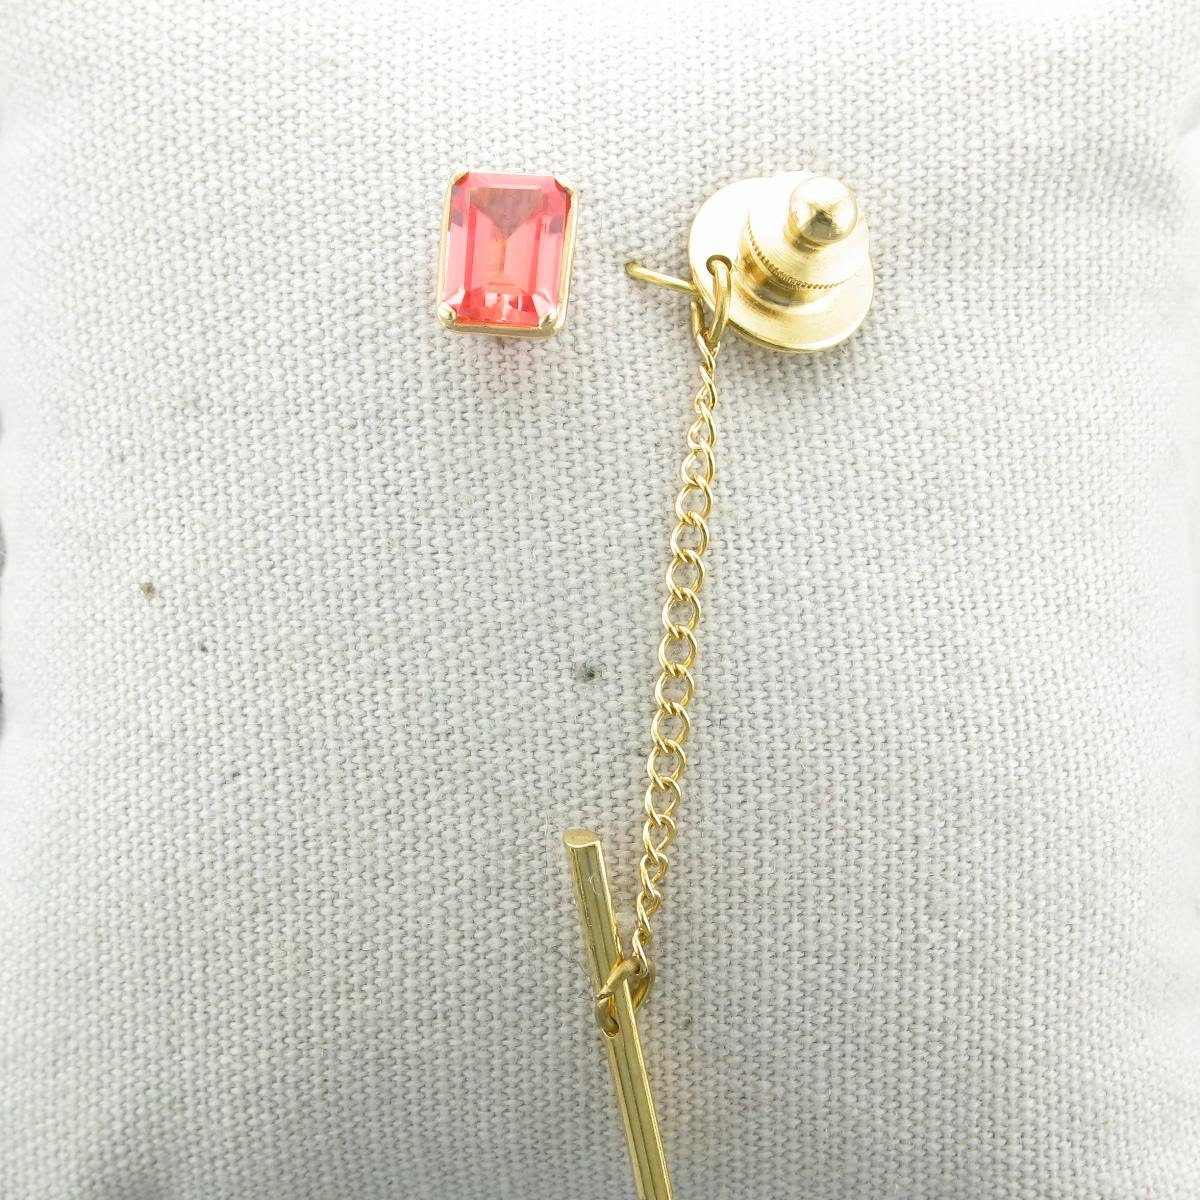 2.11ct Created Padparadscha Sapphire Tie Tack set in 14K Yellow Gold